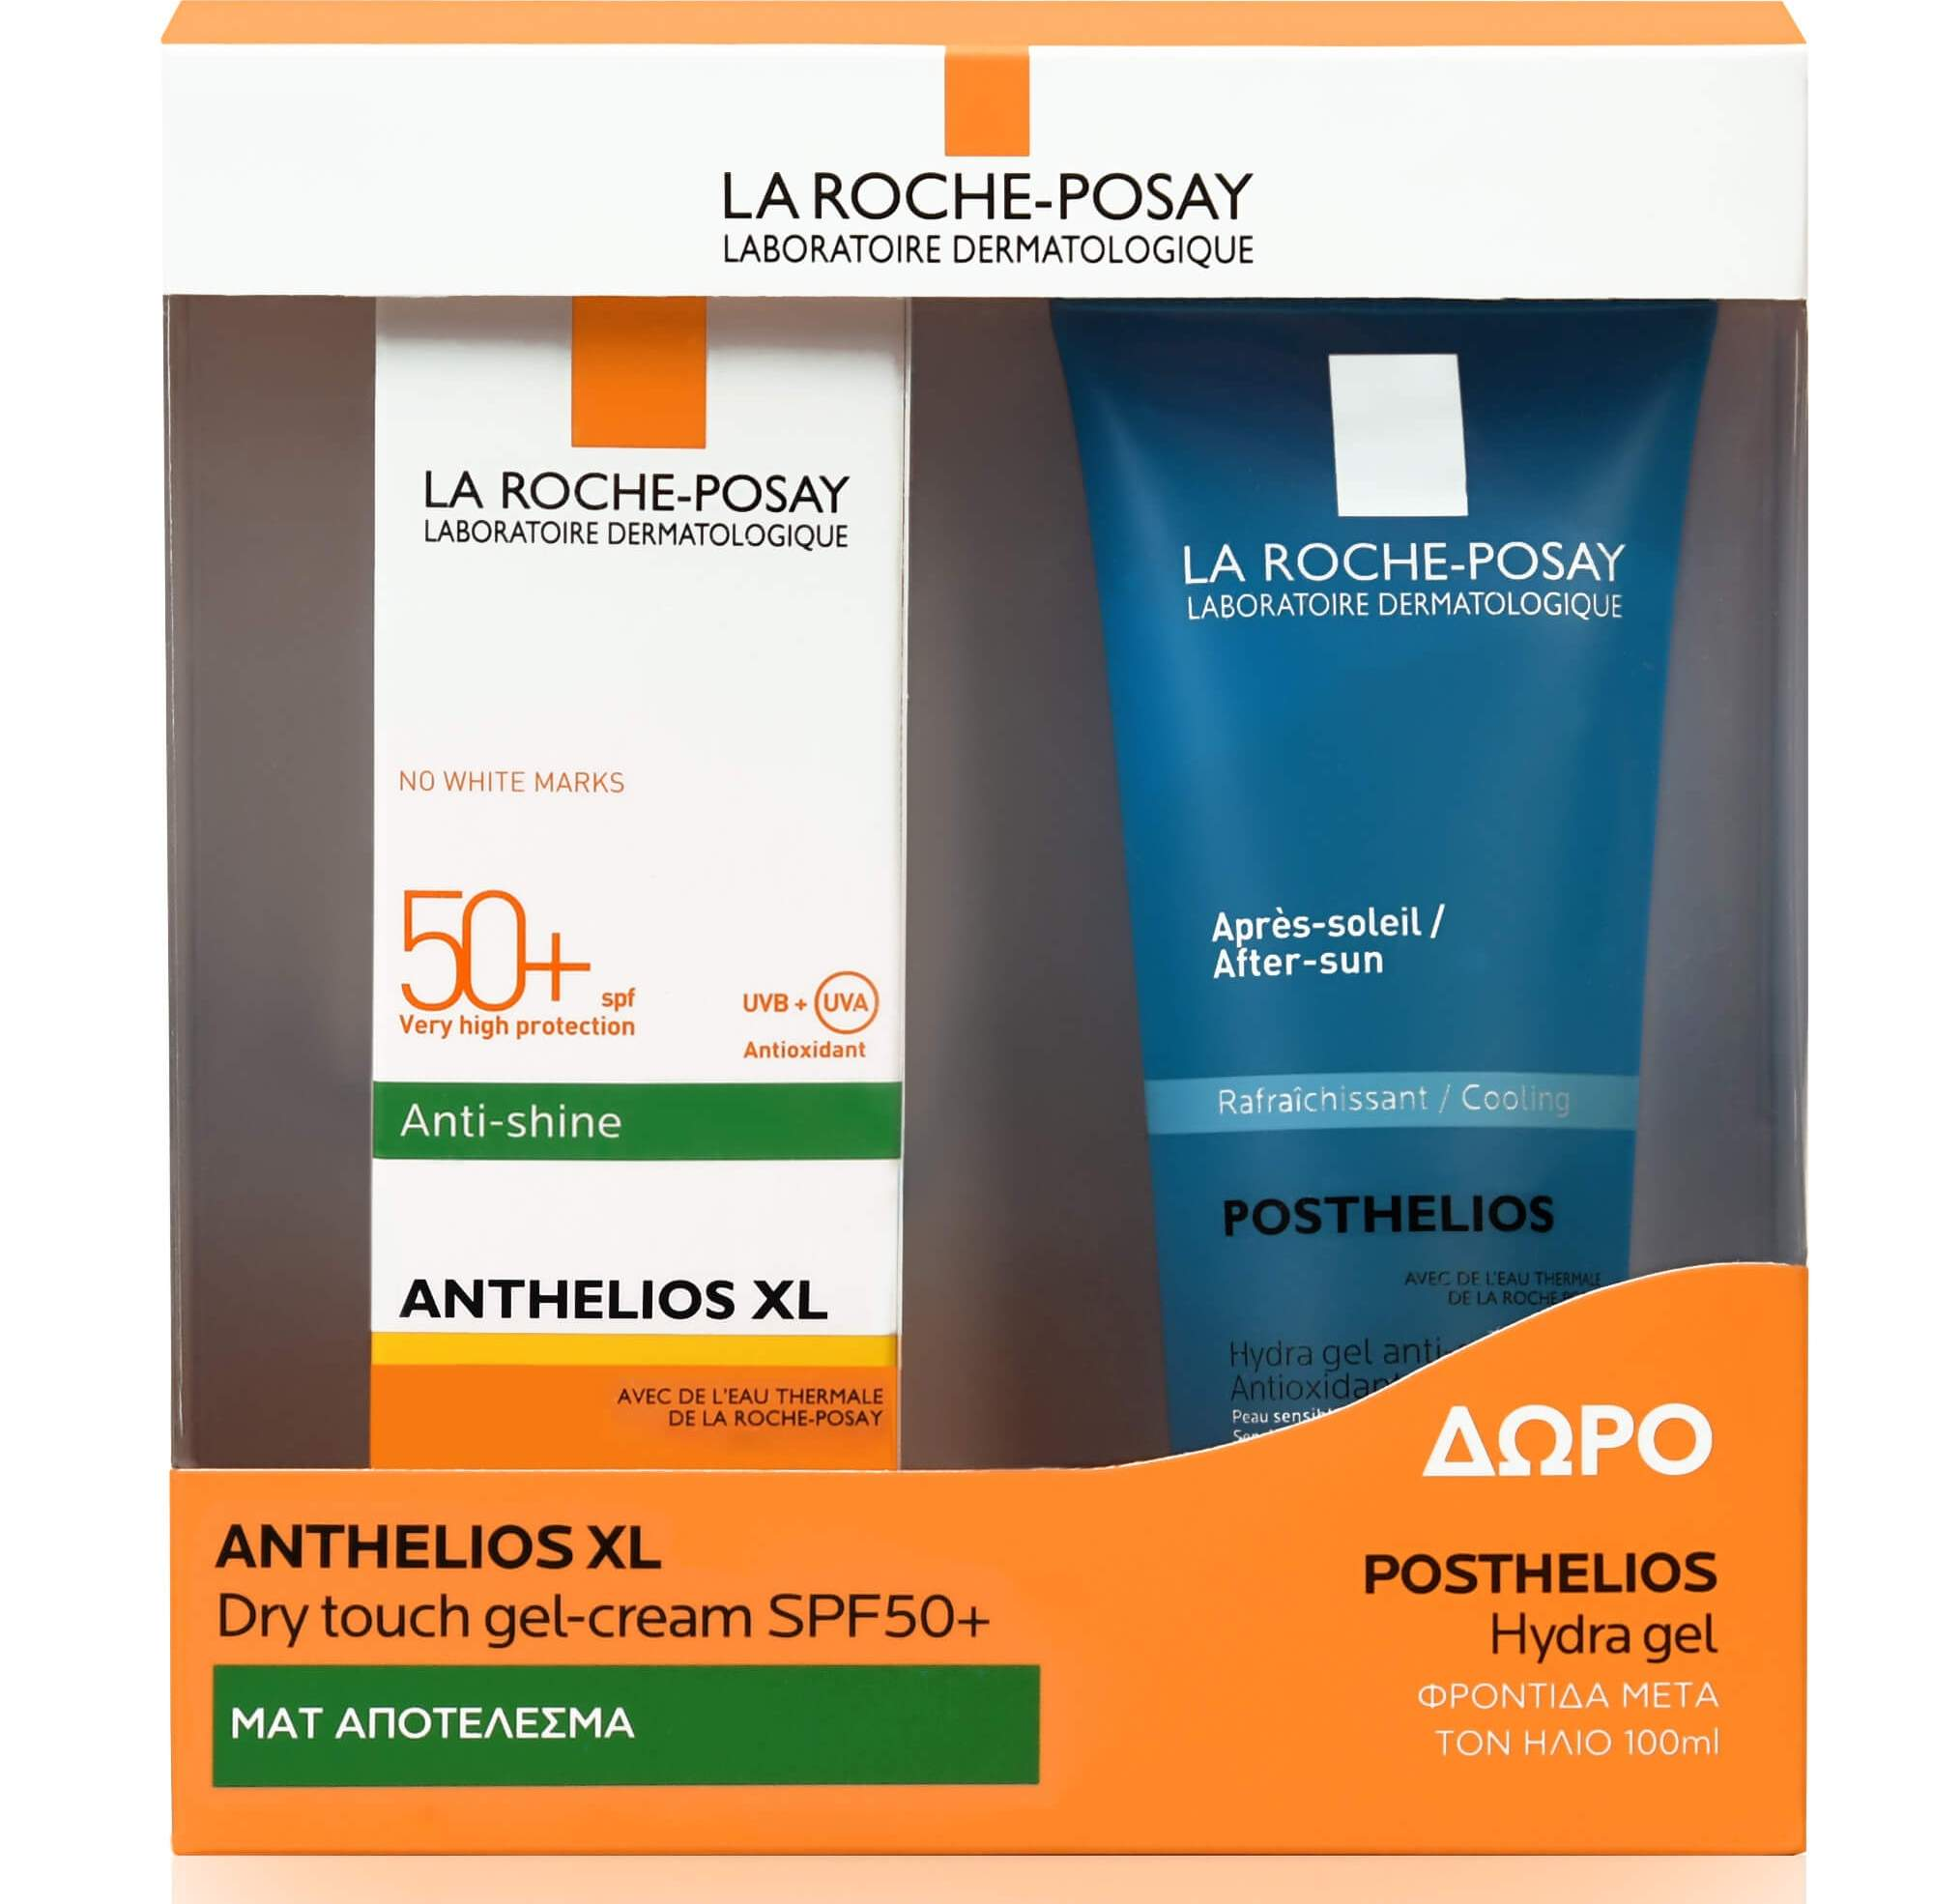 La Roche-Posay Πακέτο Προσφοράς Anthelios XL Dry Touch Spf50+ Αντηλιακό Προσώπου 50ml & Δώρο Posthelios After Sun 100ml